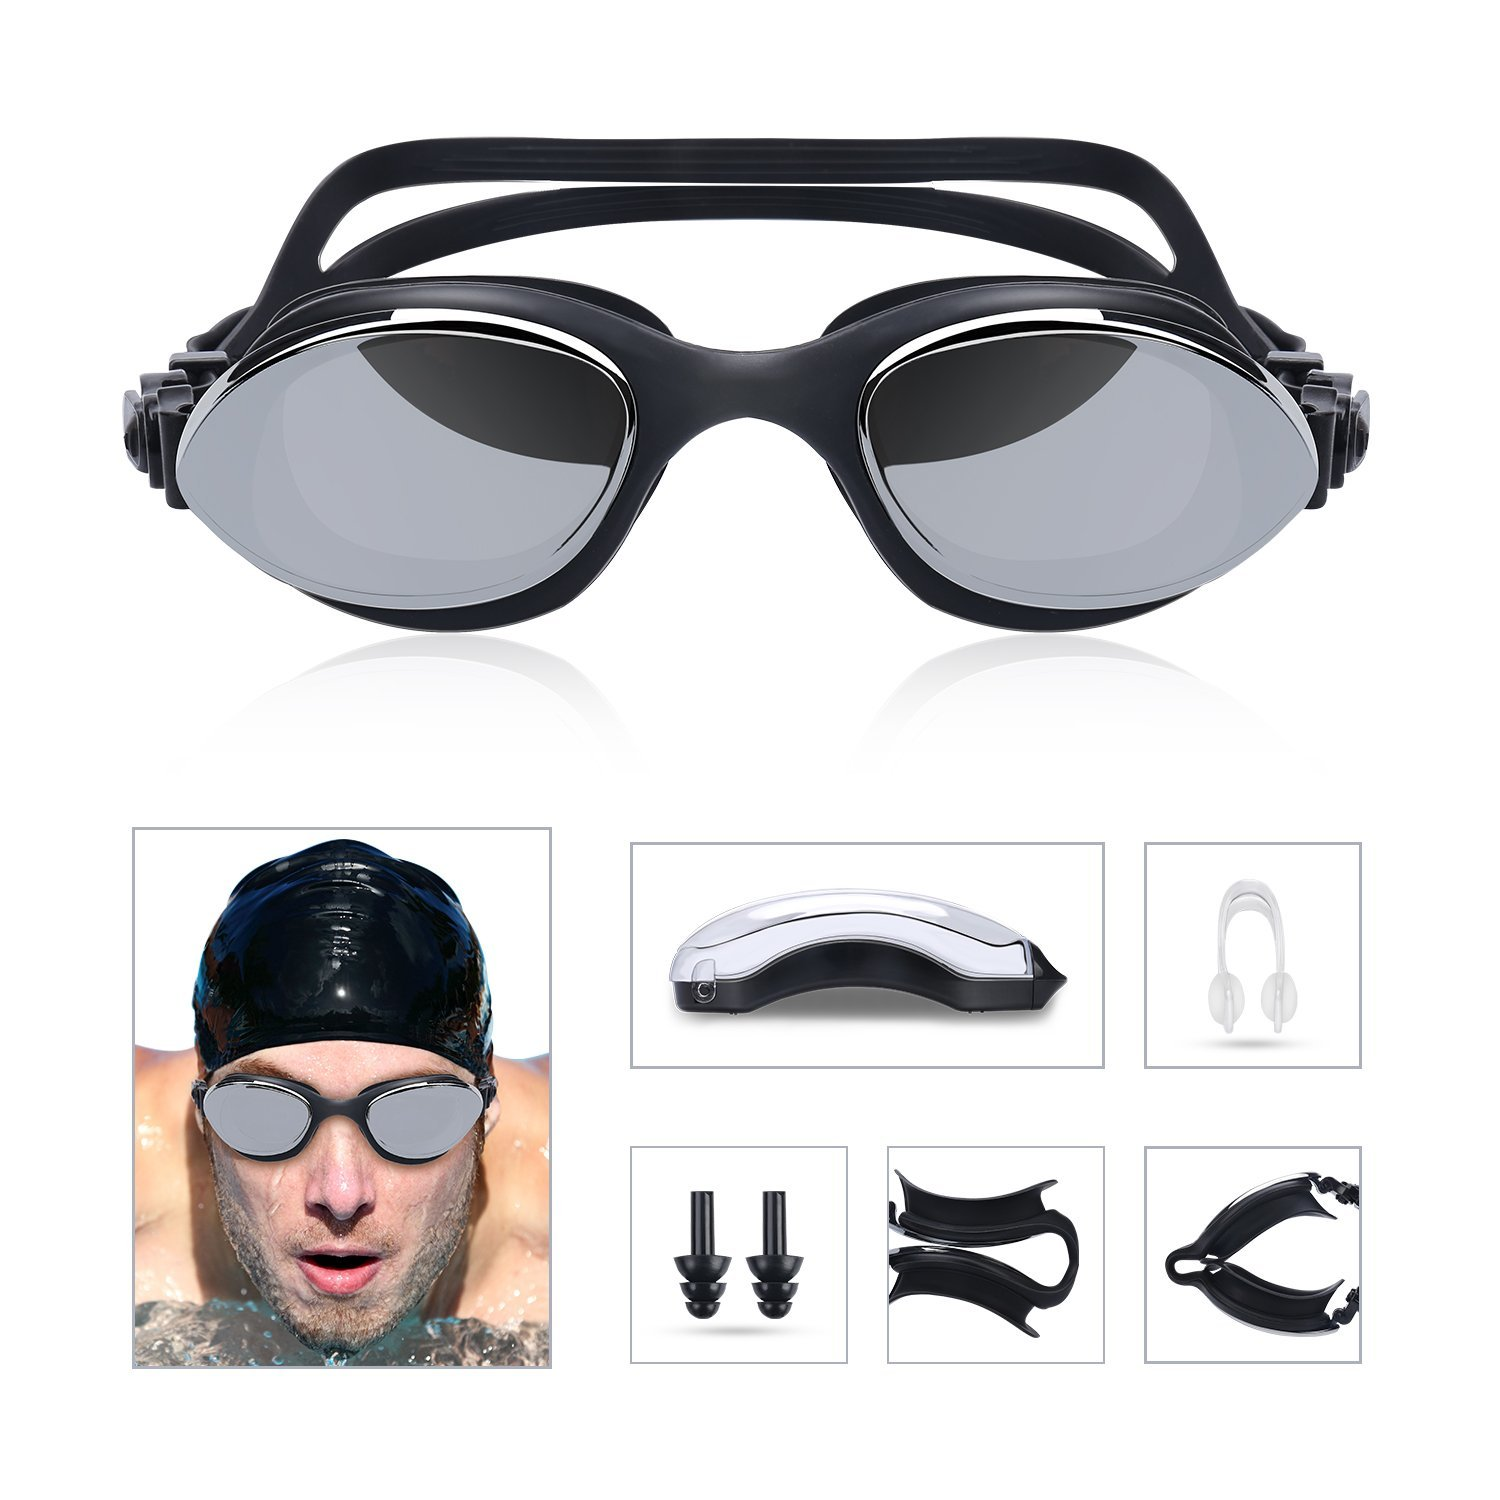 Duikbril Anti-fog 100% UV protection voor €5,88